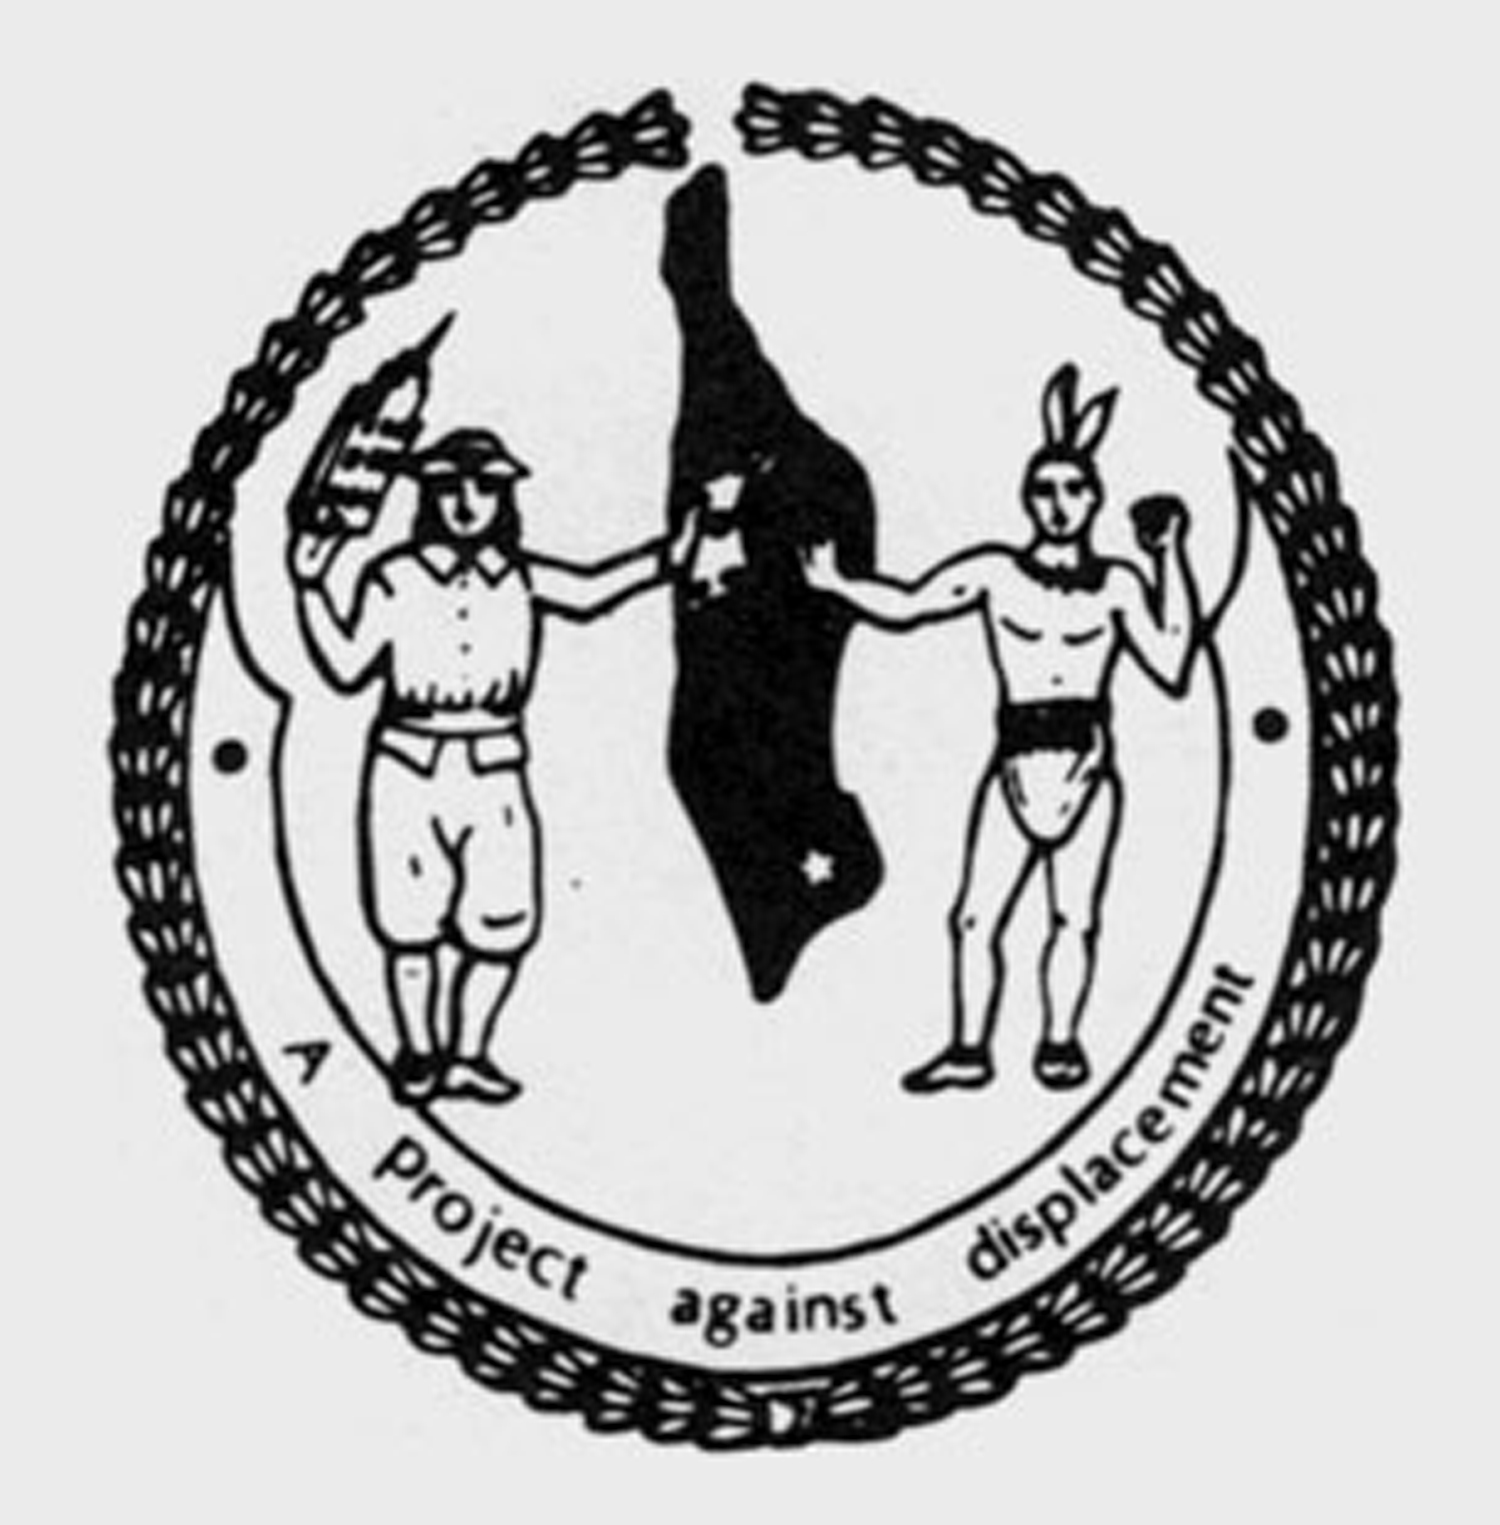 Logo of the Not For Sale committee is based on the City of New York's emblem, except that here the Indian rejects the Dutchman's money.